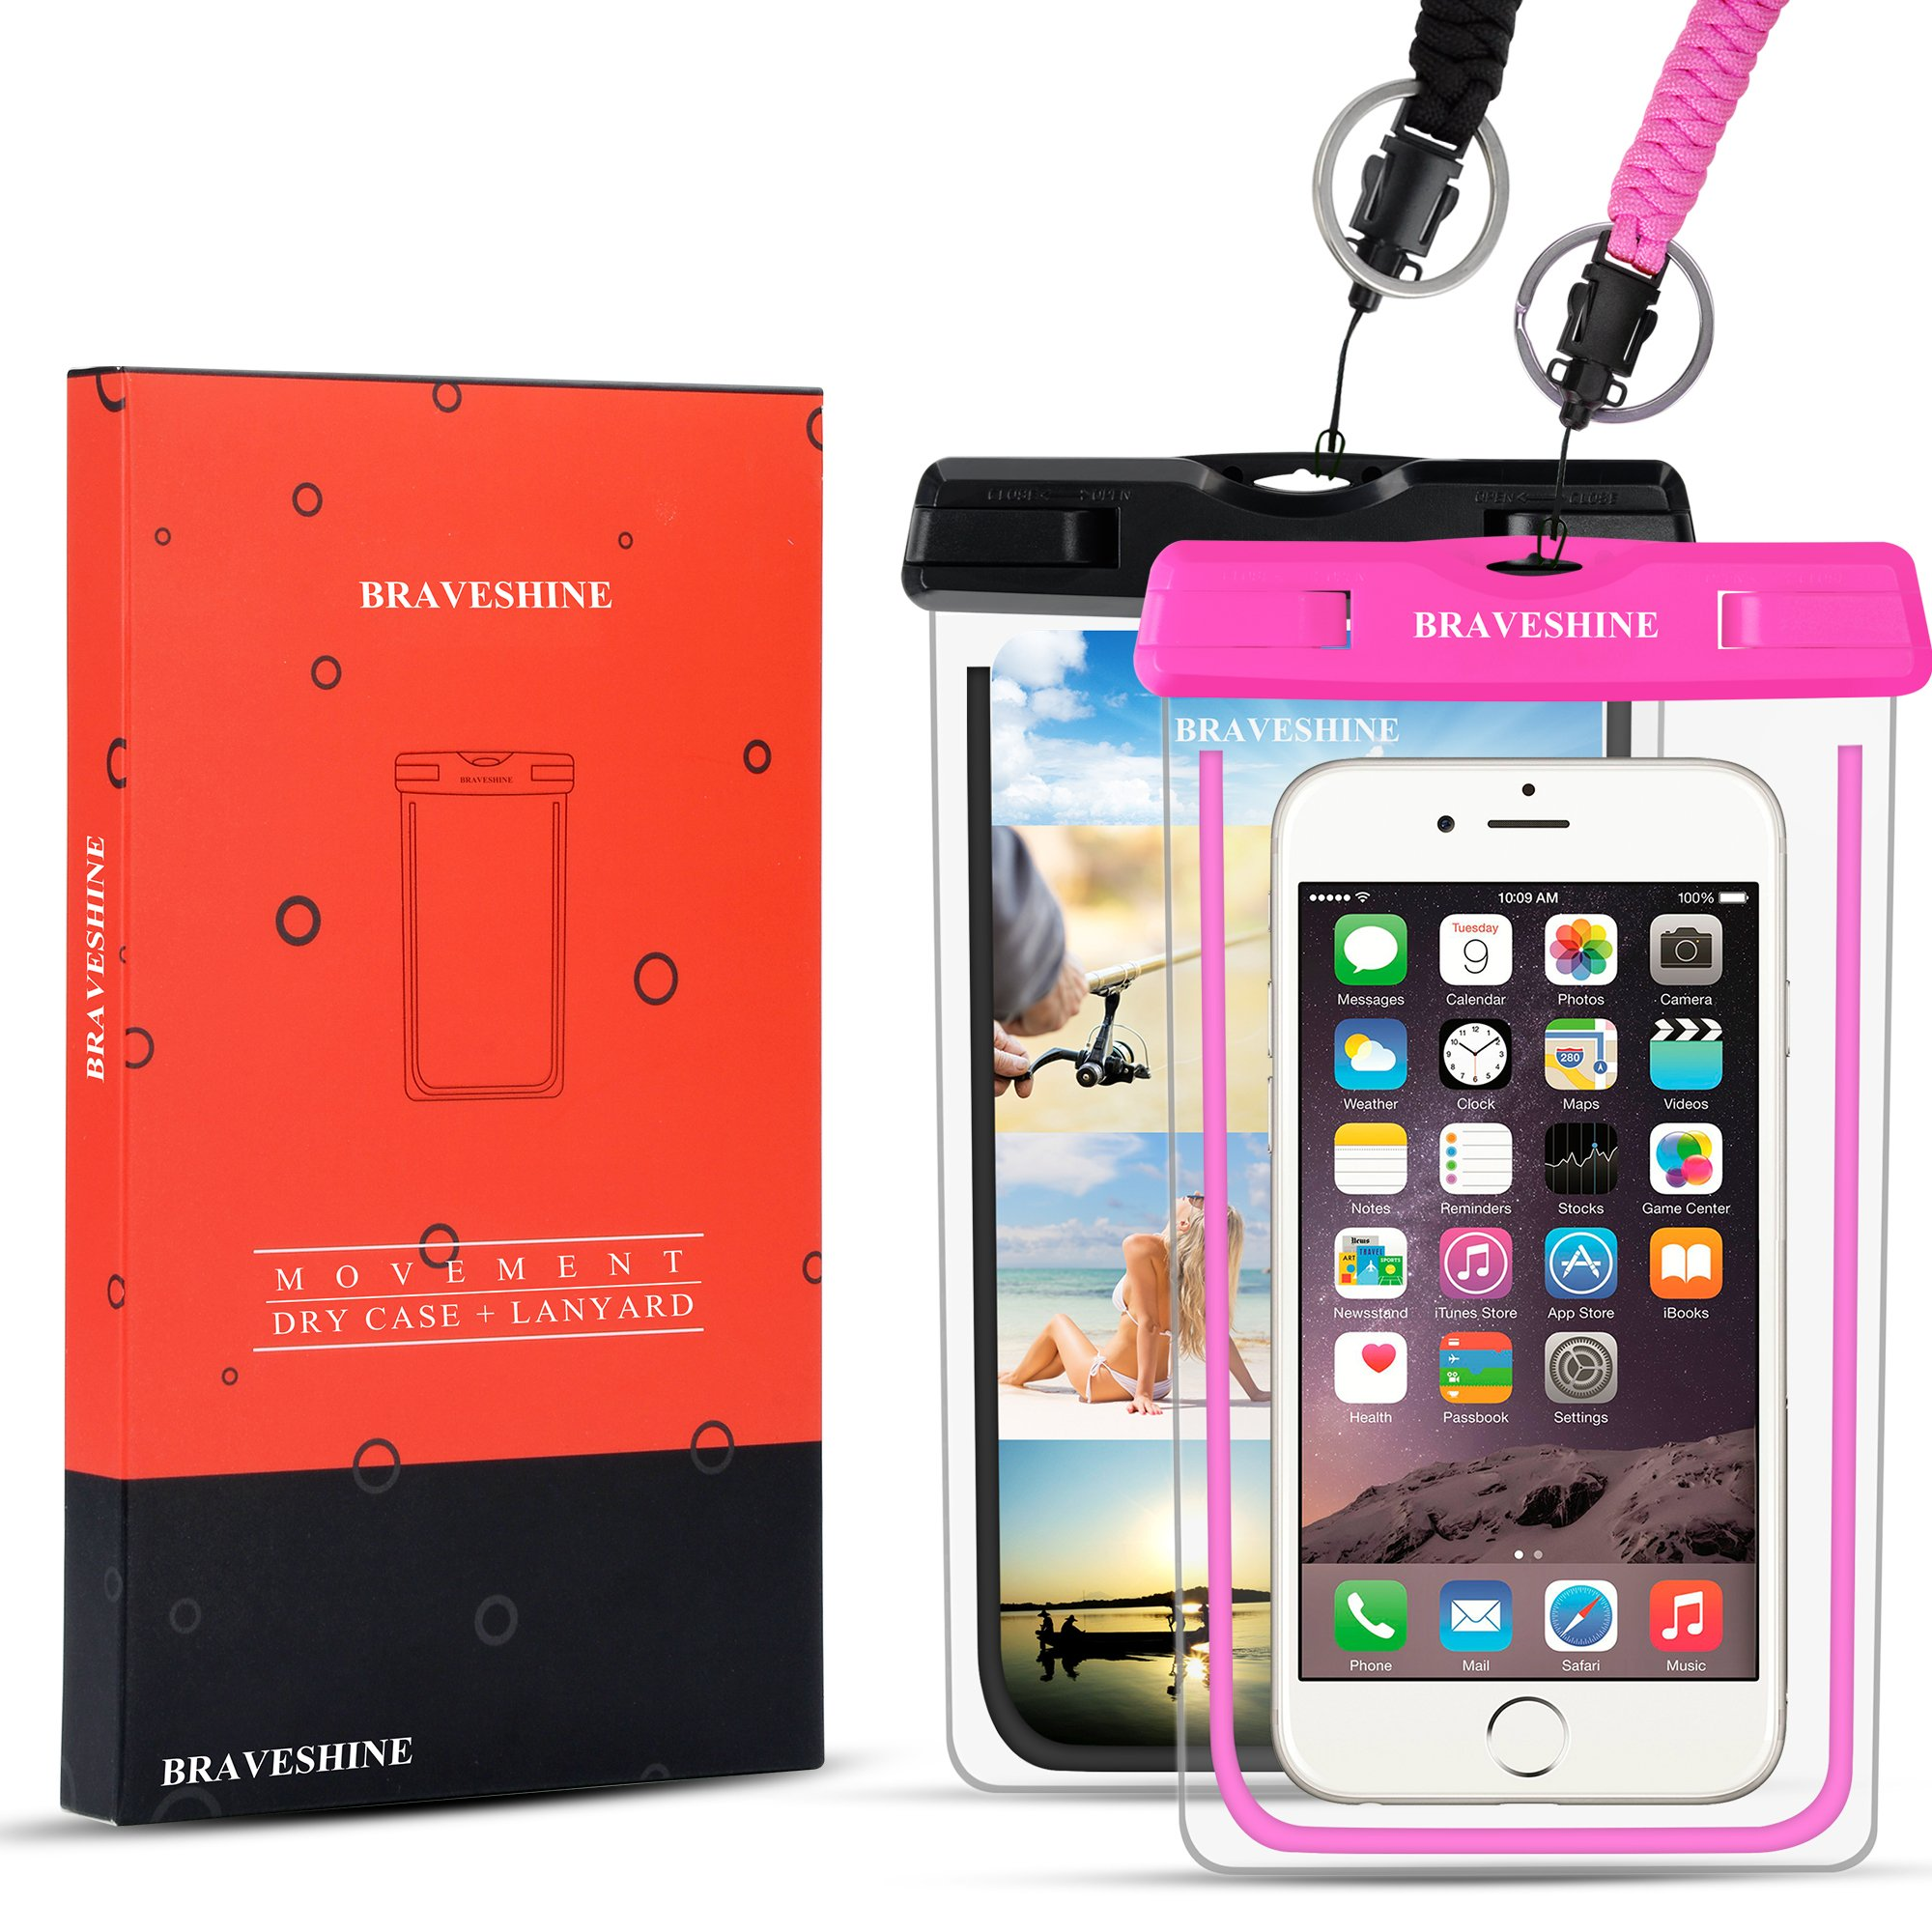 BRAVESHINE Universal Waterproof Case, Underwater Phone Pouch for iPhone X/8/8 Plus/7/6, Galaxy/Google Pixel/LG/HTC - Cellphone Dry Bag for Swimming, Diving, Indoor Outdoor Water Sports - Black + Pink